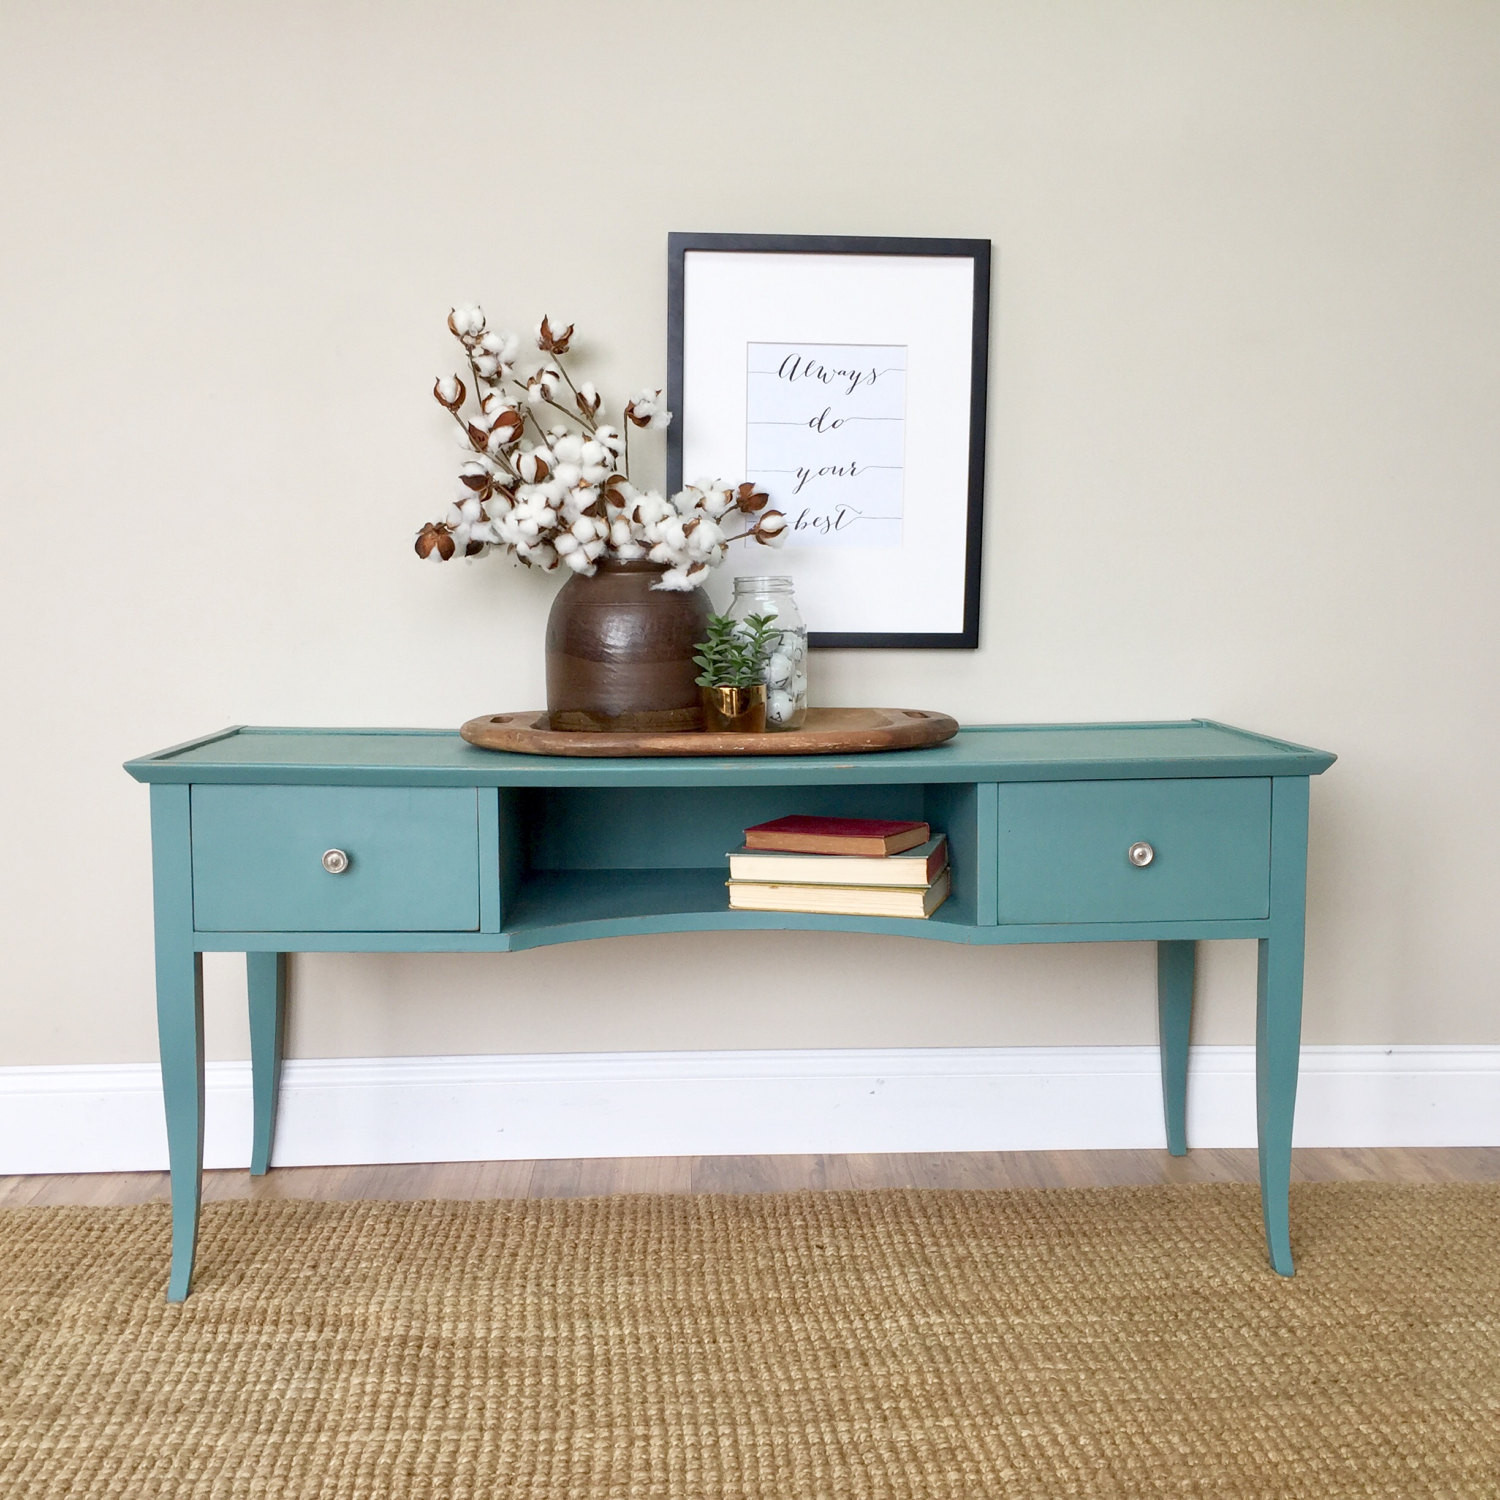 Best ideas about Teal Entryway Table . Save or Pin TV Media Console Teal Console Table Painted Furniture Now.